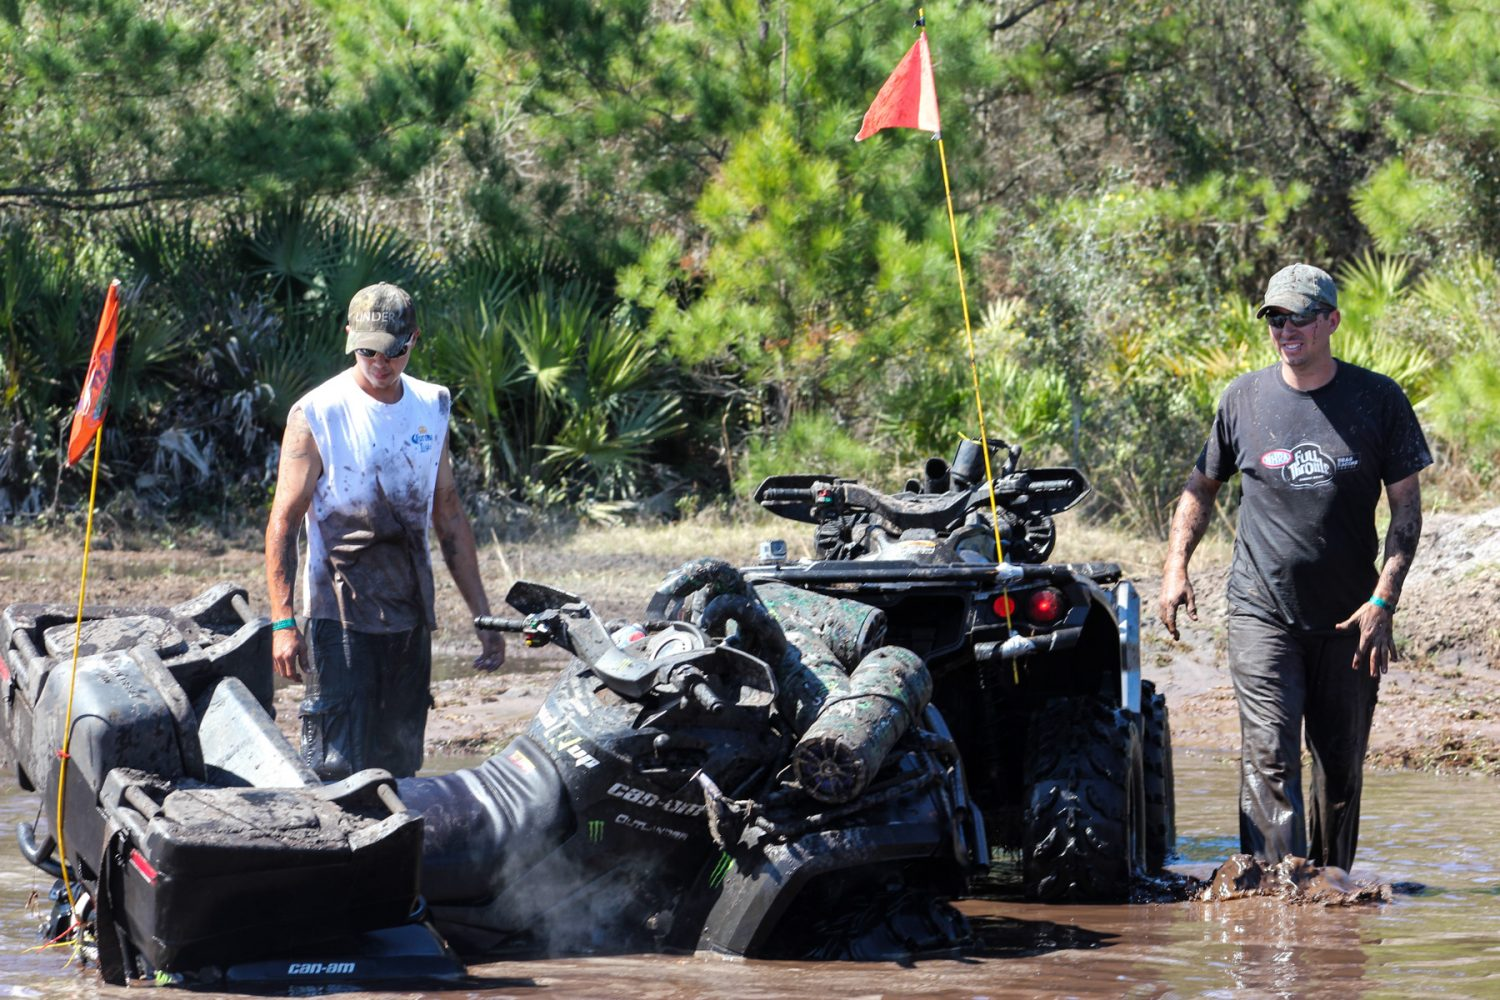 Jesse Brooks, left, looks at his four-wheeler that got stuck in the mud as his friend, Patrick Anthony, comes to his aide on Sunday afternoon, March 2, 2014.